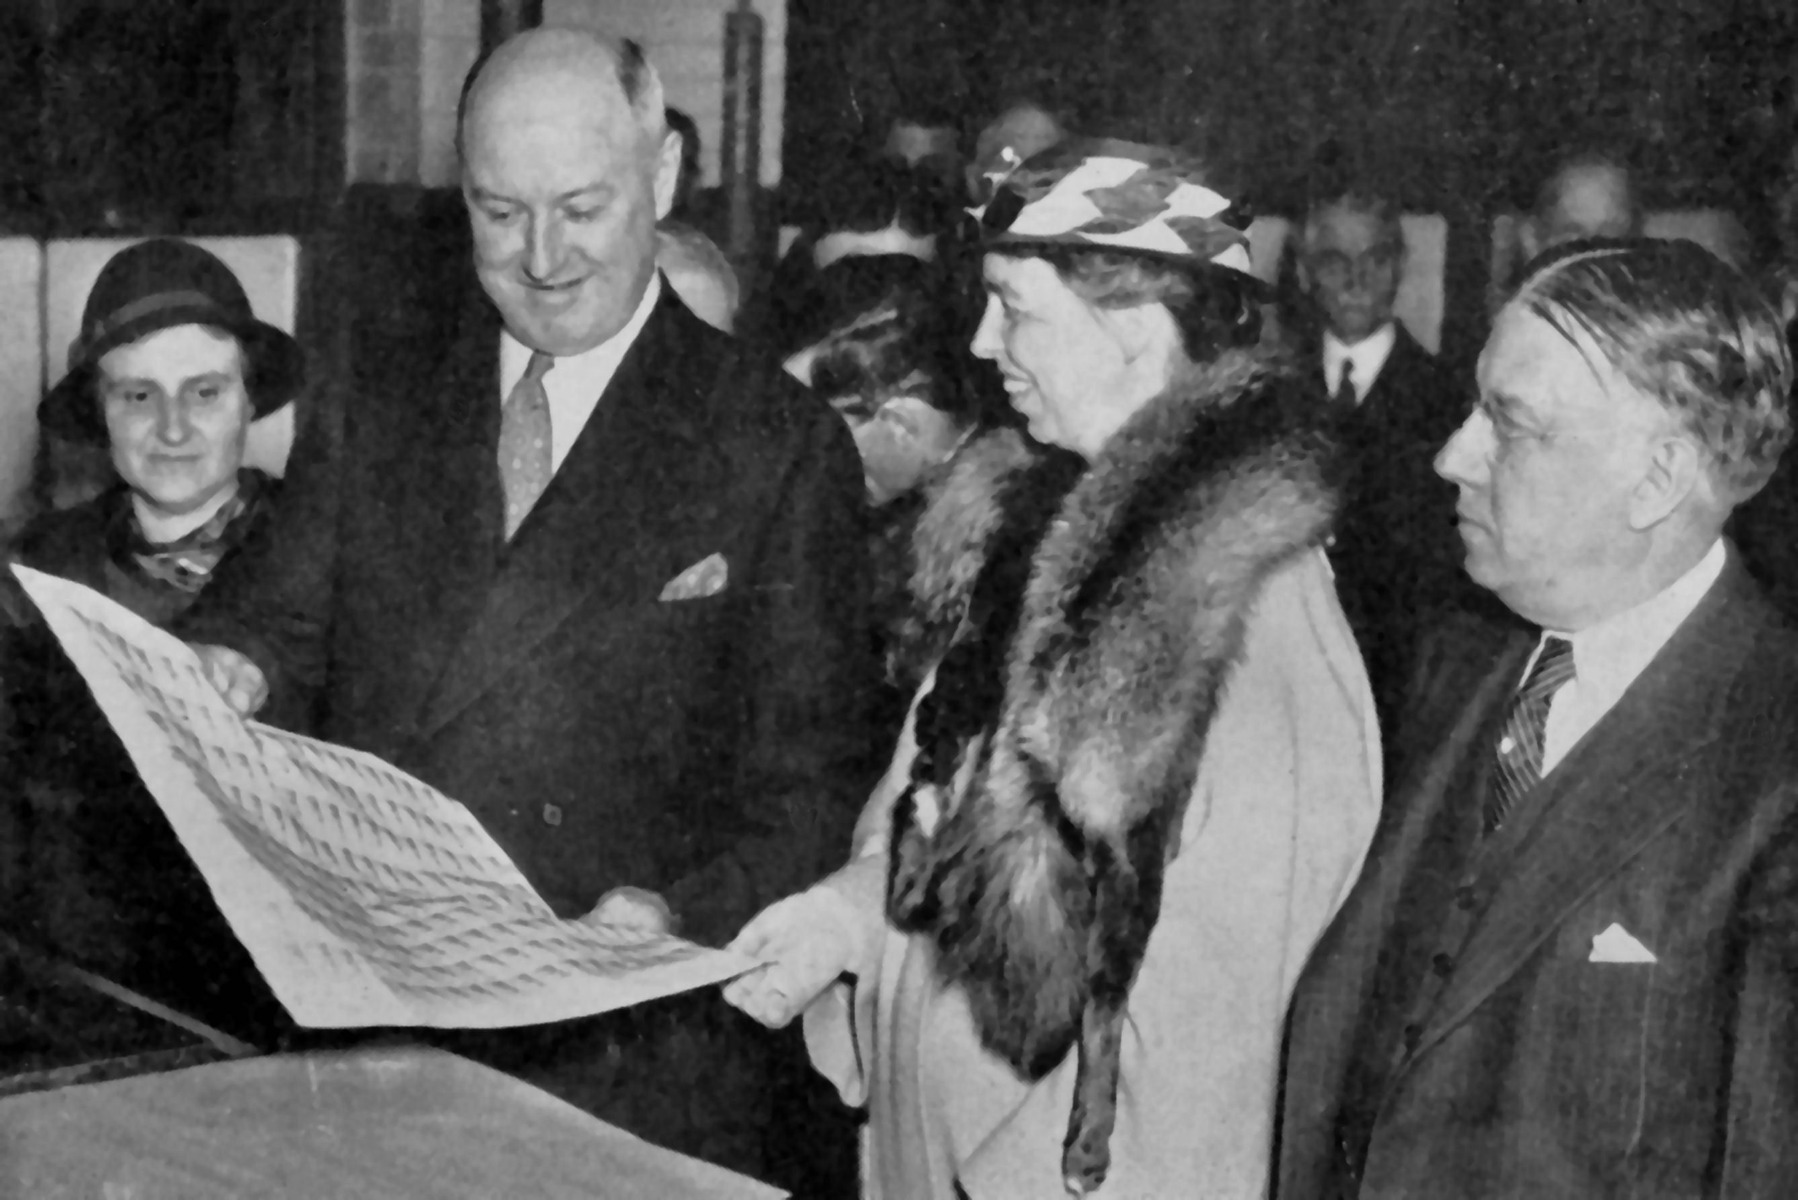 James Farley and Eleanor Roosevelt examining the Mother's Day stamps